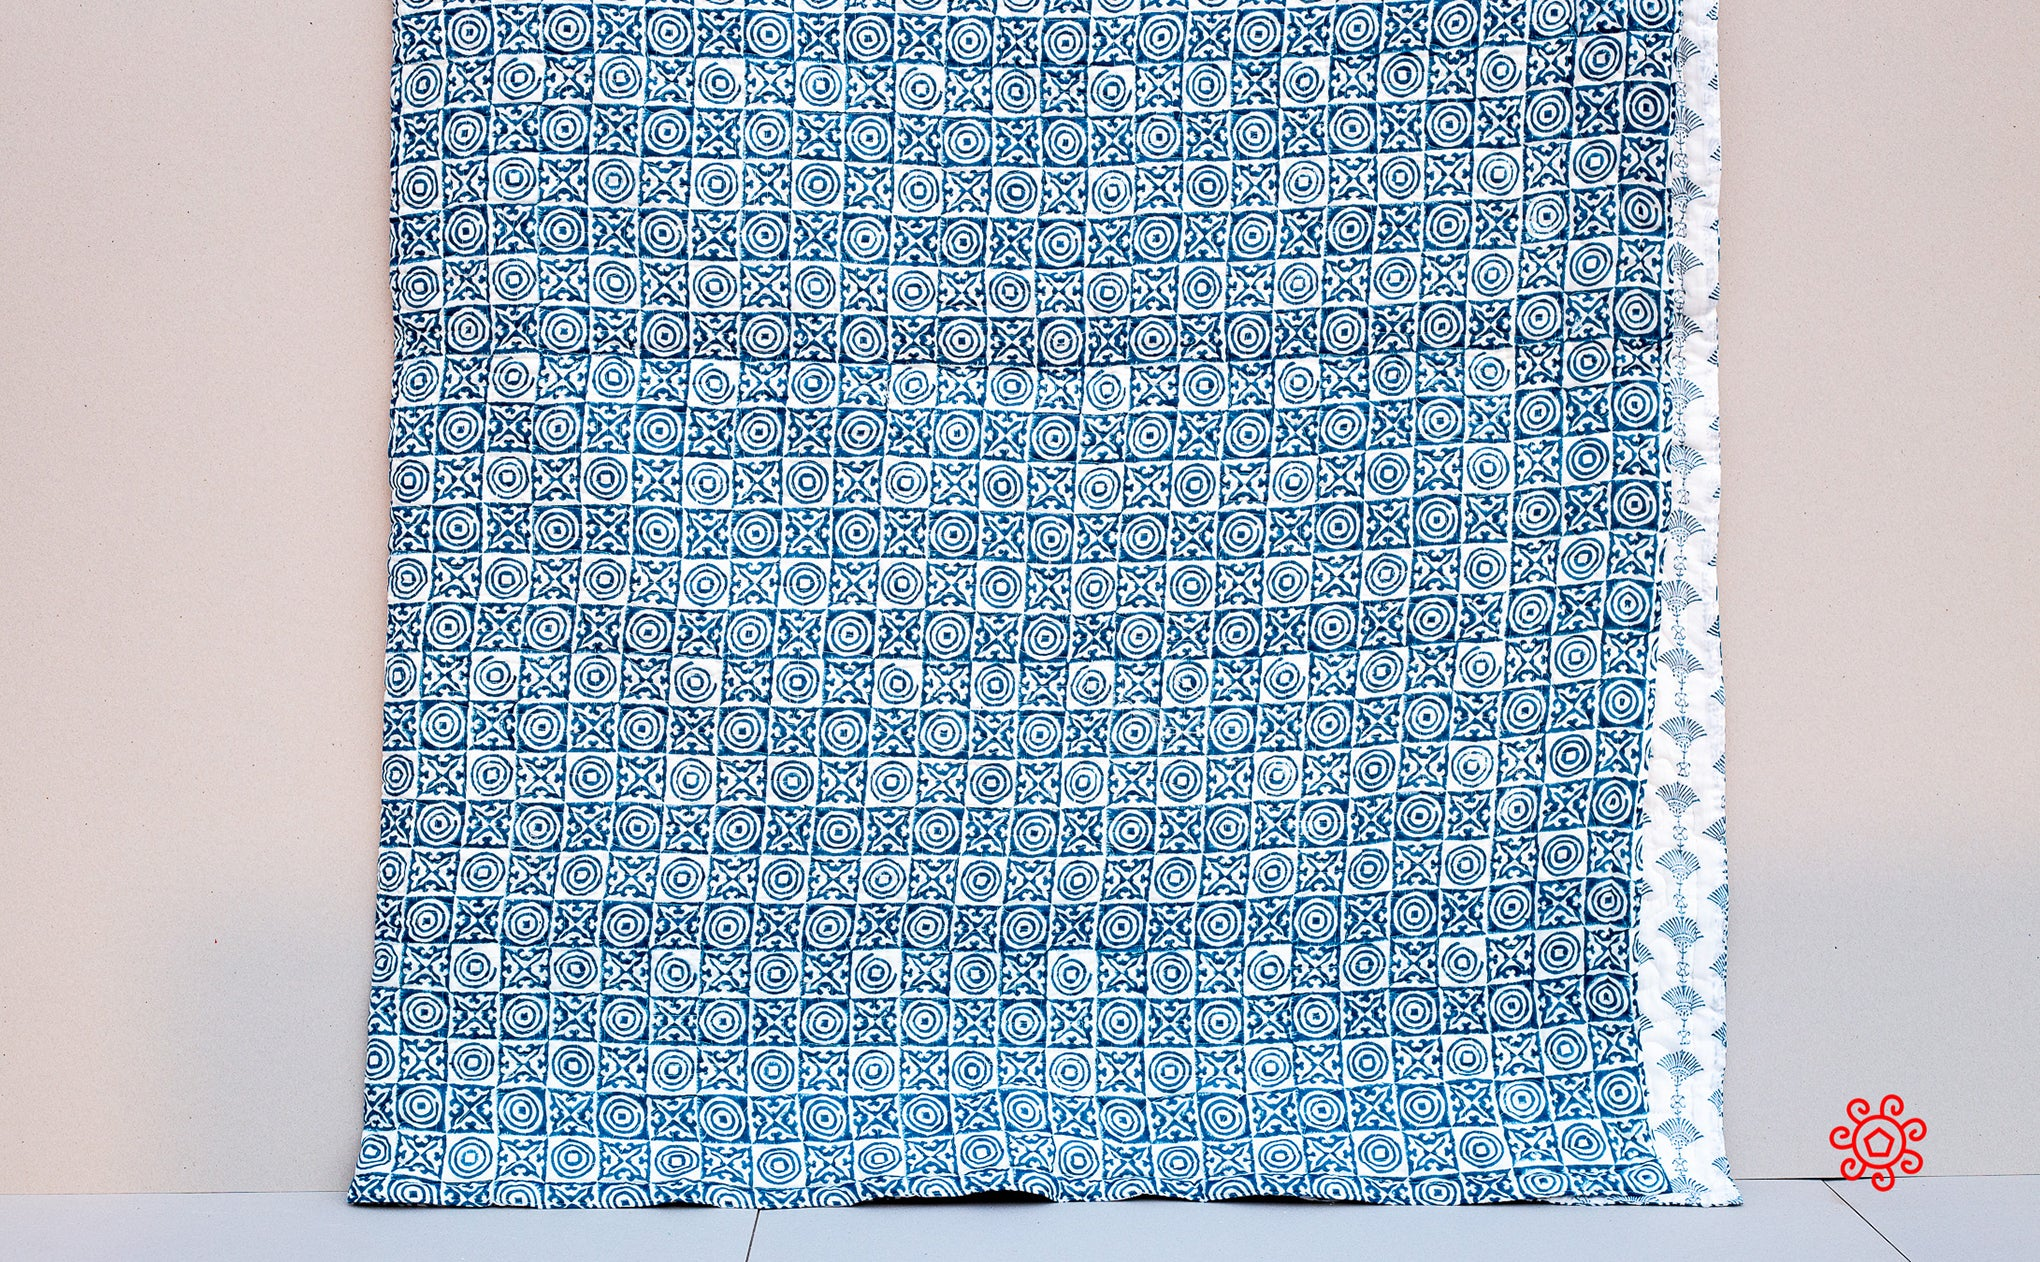 All Season Handmade Queen Quilt, Jaipuri Block printed, Natural Cotton Queen Bedspread, 100% Cotton Throw, Quilted Bedcover, Room Decor Blue